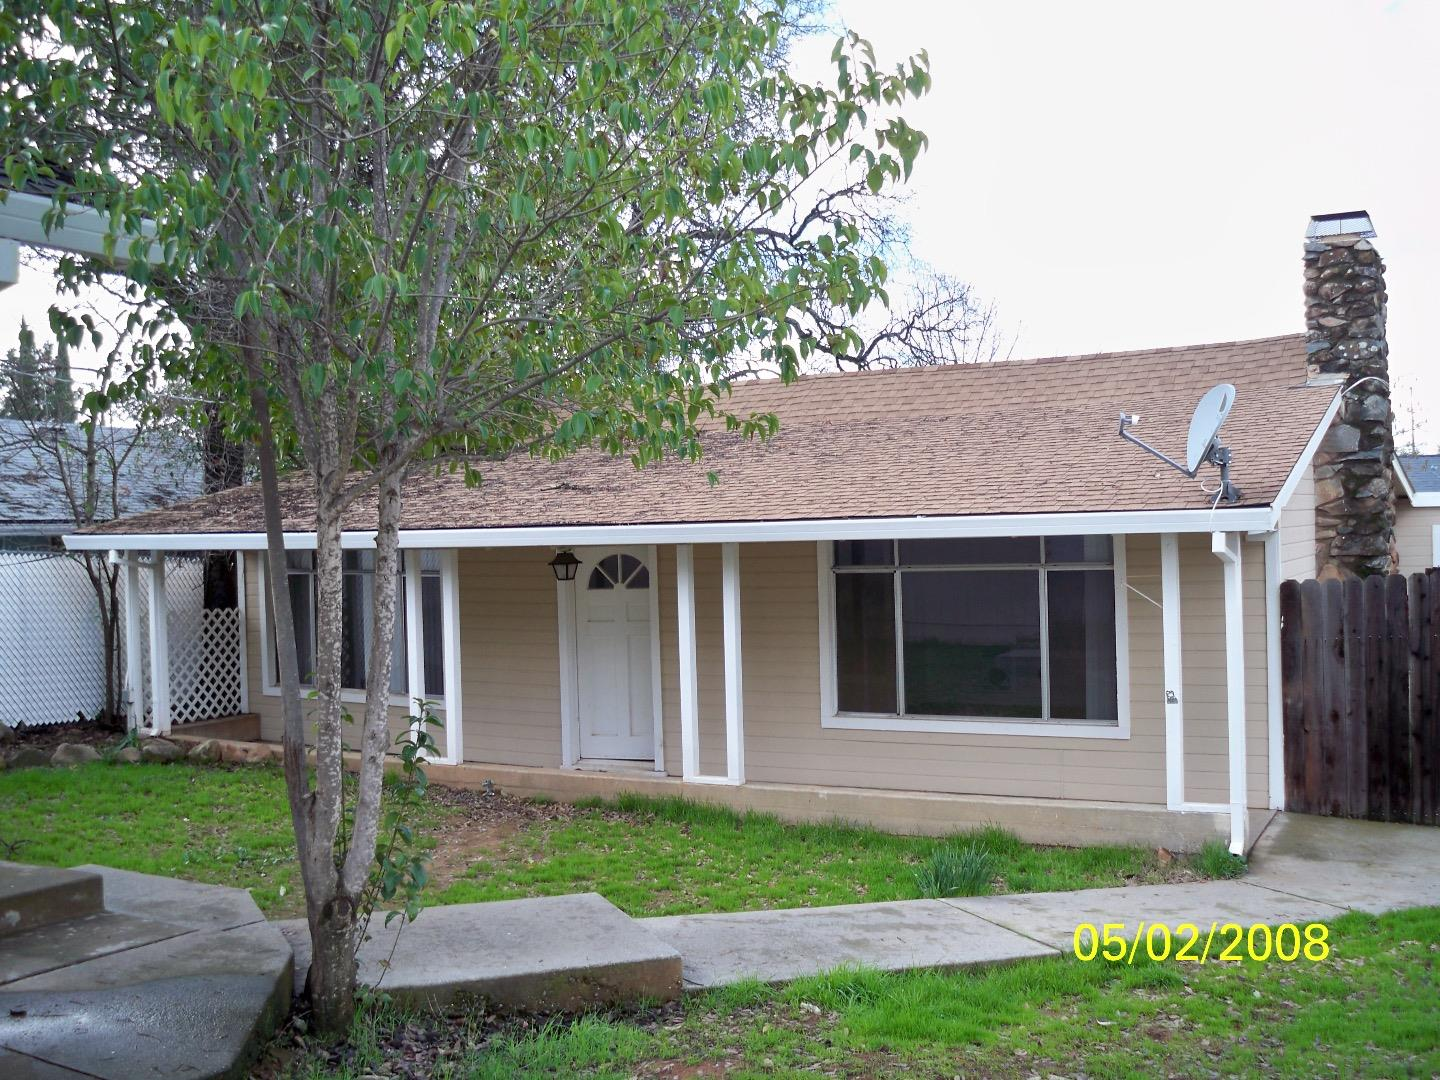 Multi-Family Home for Sale at 1257-1261 Live Oak Lane Auburn, California 95603 United States